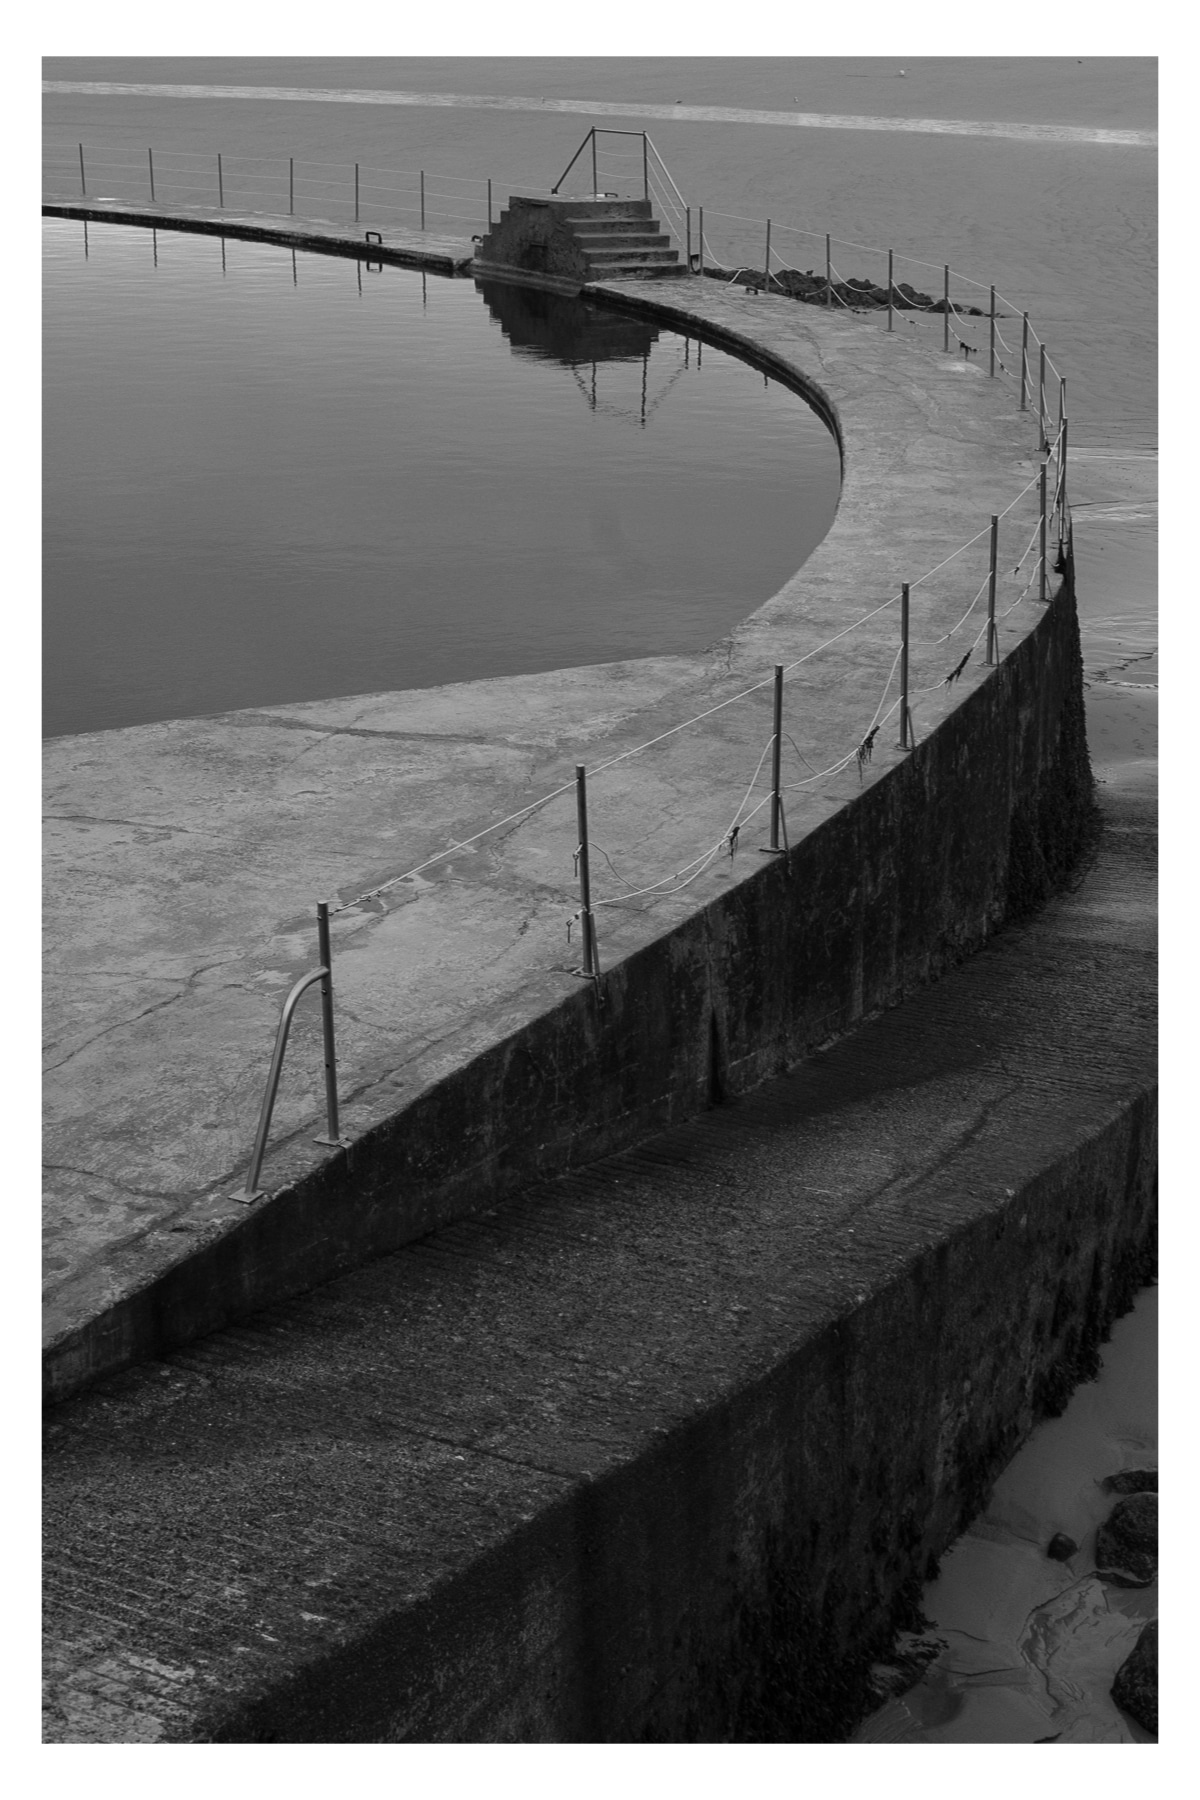 Monochrome photo of an outdoor saltwater pool at the beach in Dinard France.